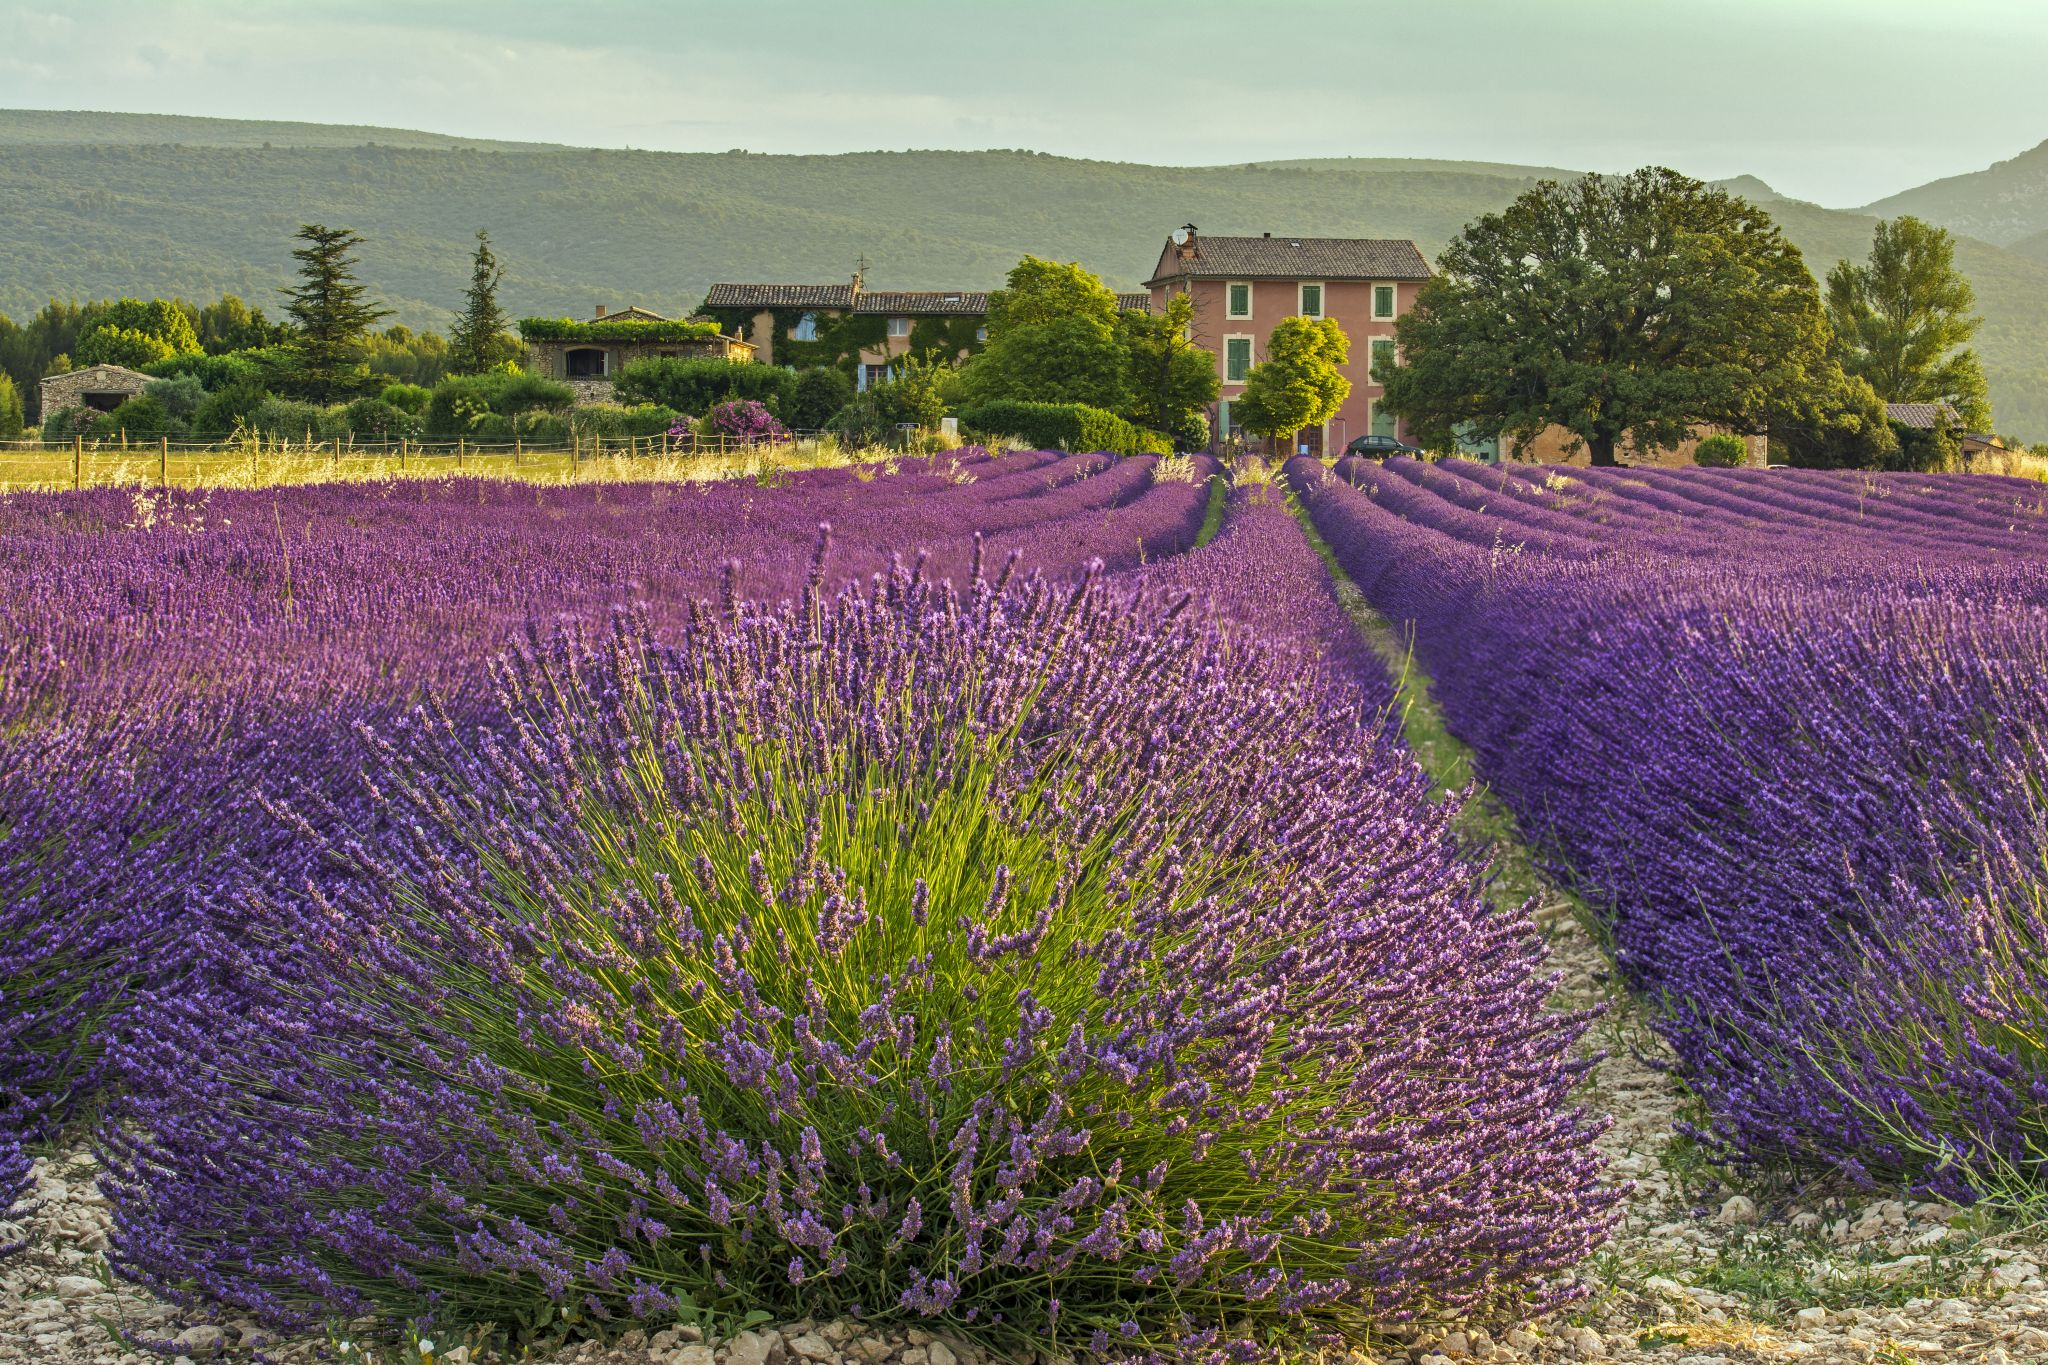 The Lavender Fields of Roussillon, France